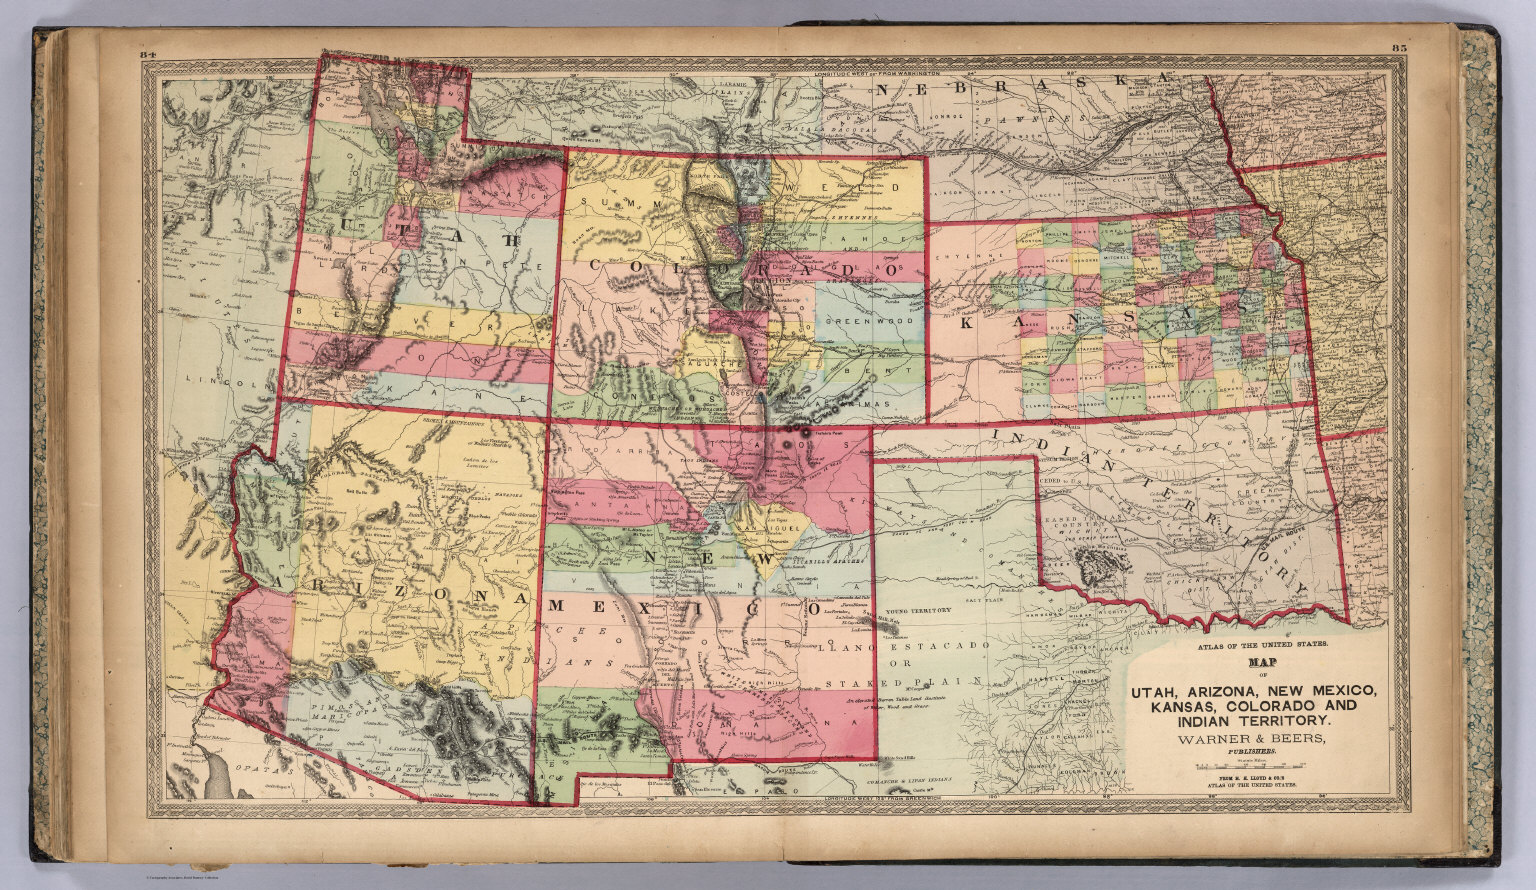 Utah, Arizona, New Mexico, Kansas, Colorado, and Indian Territory ...